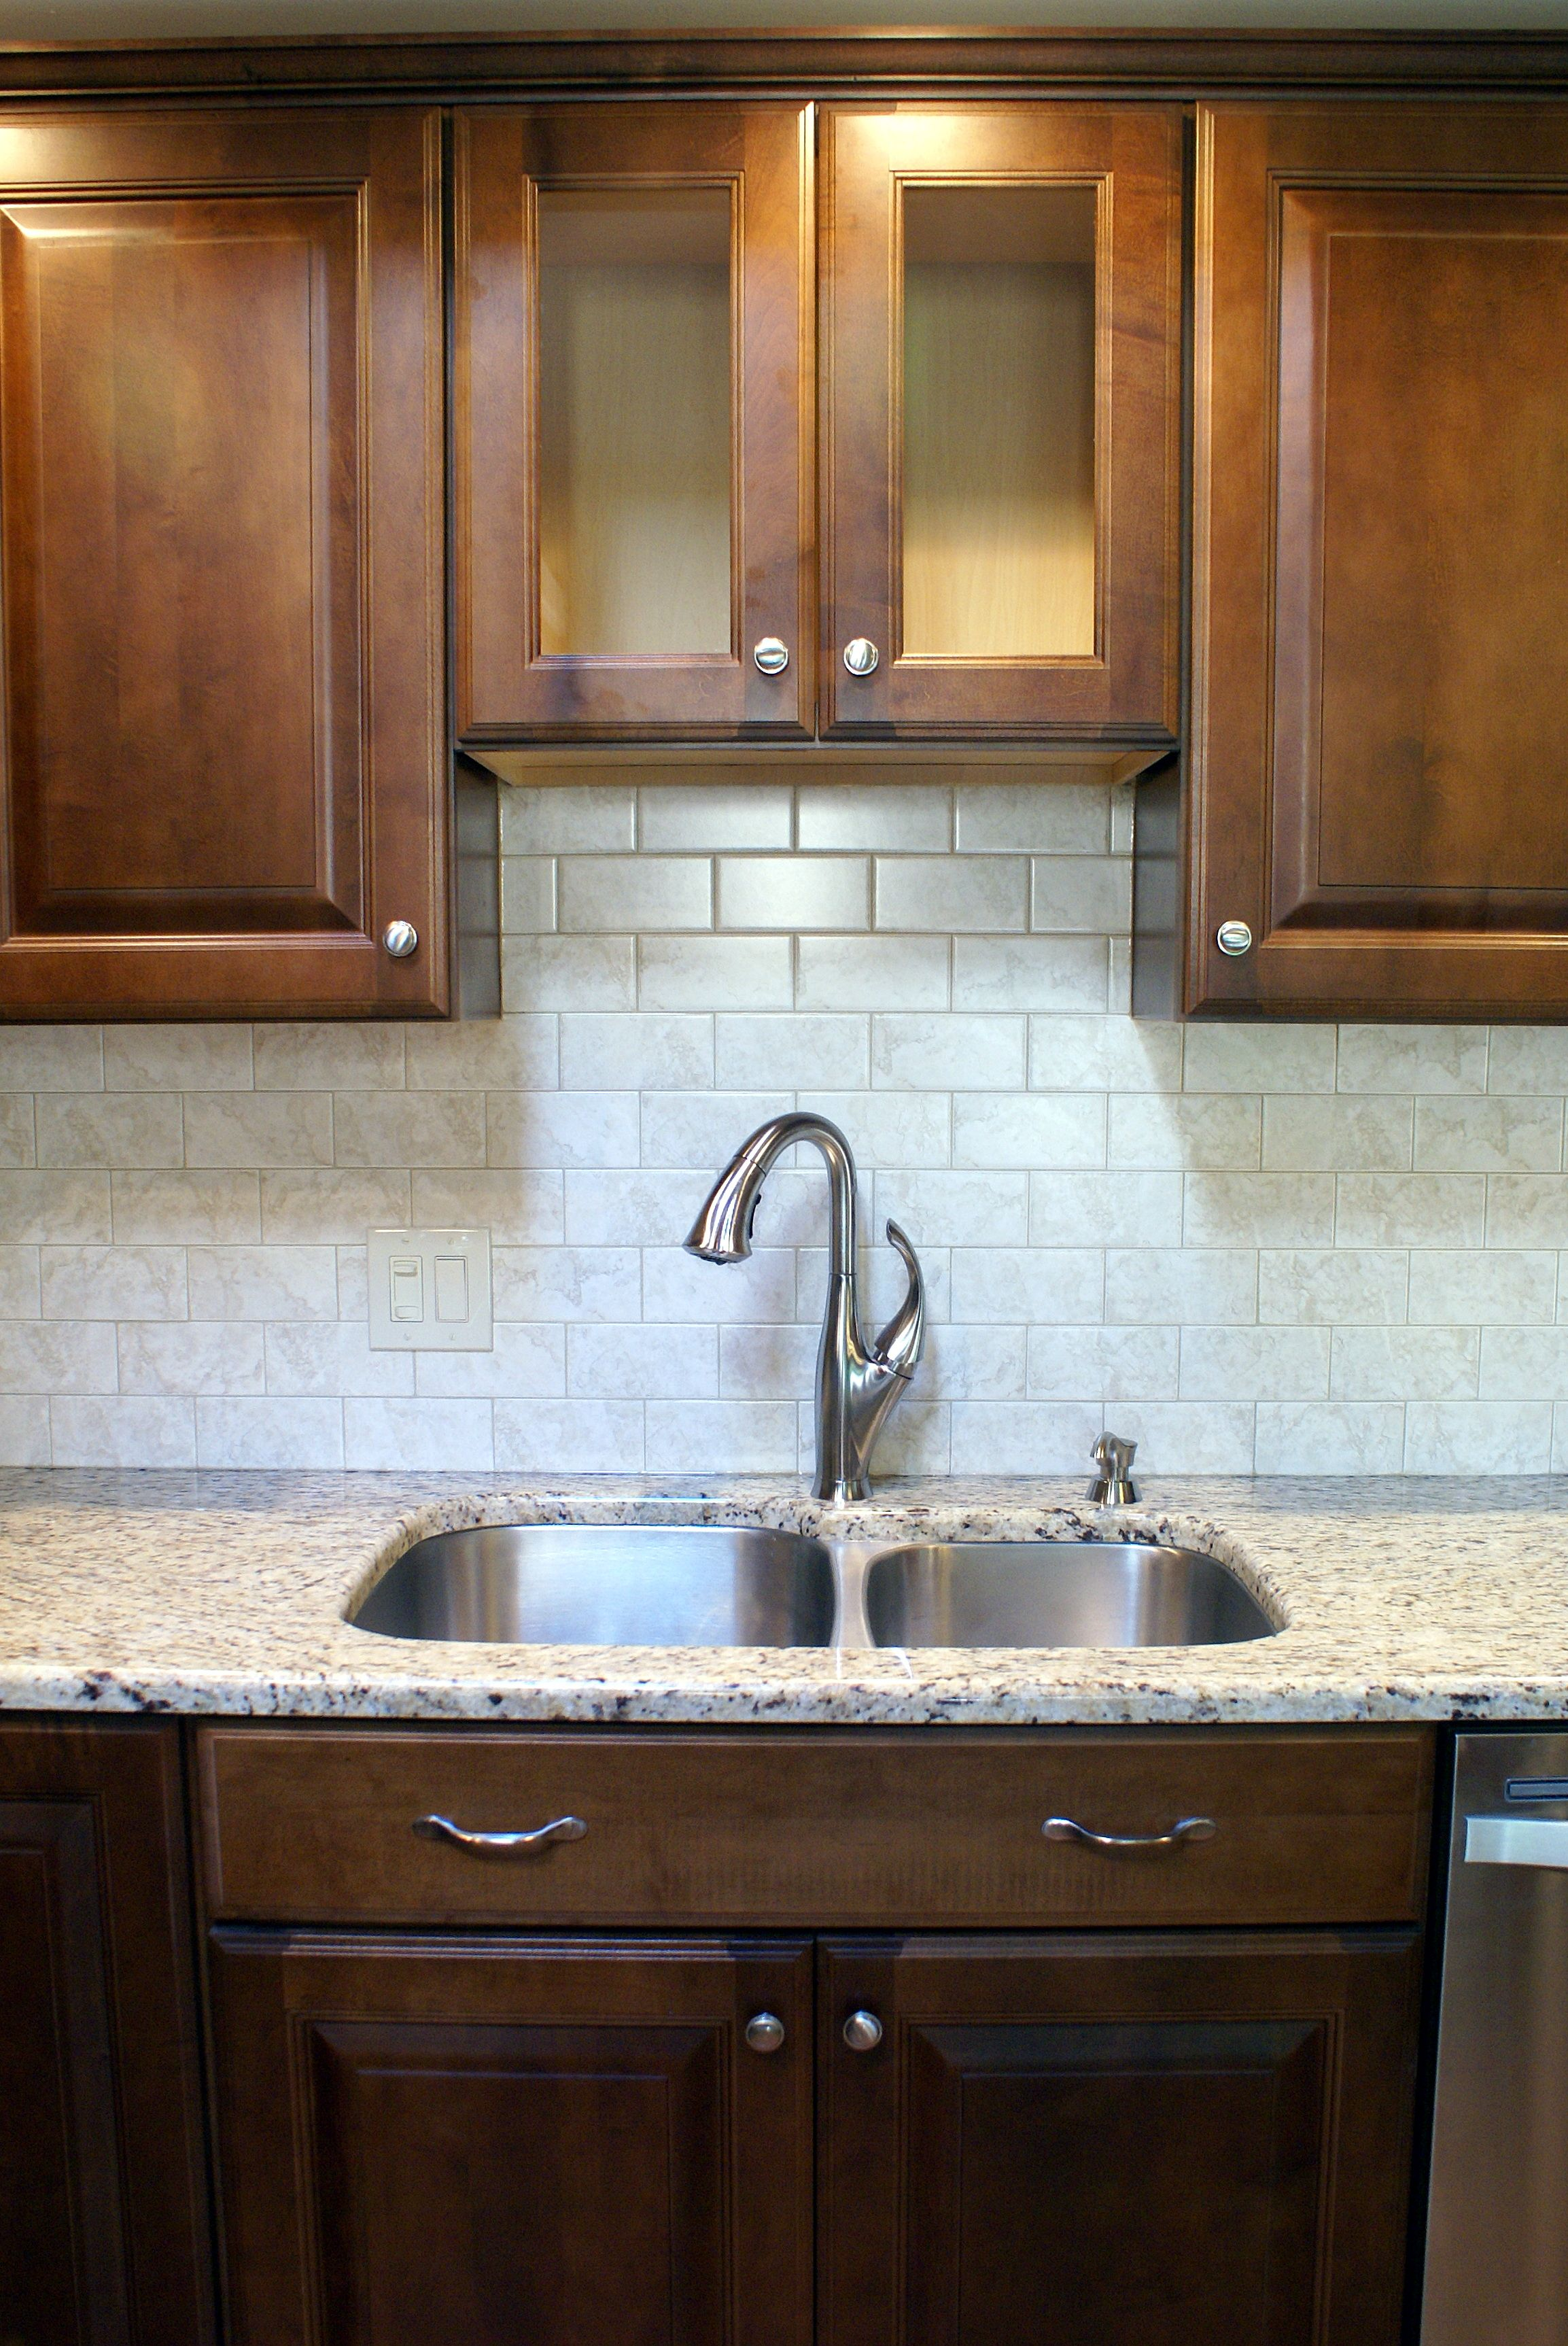 Leather Diamond Vibe Kitchen With Giallo Ornamental Granite Countertops 4 Of 6 Kitchens